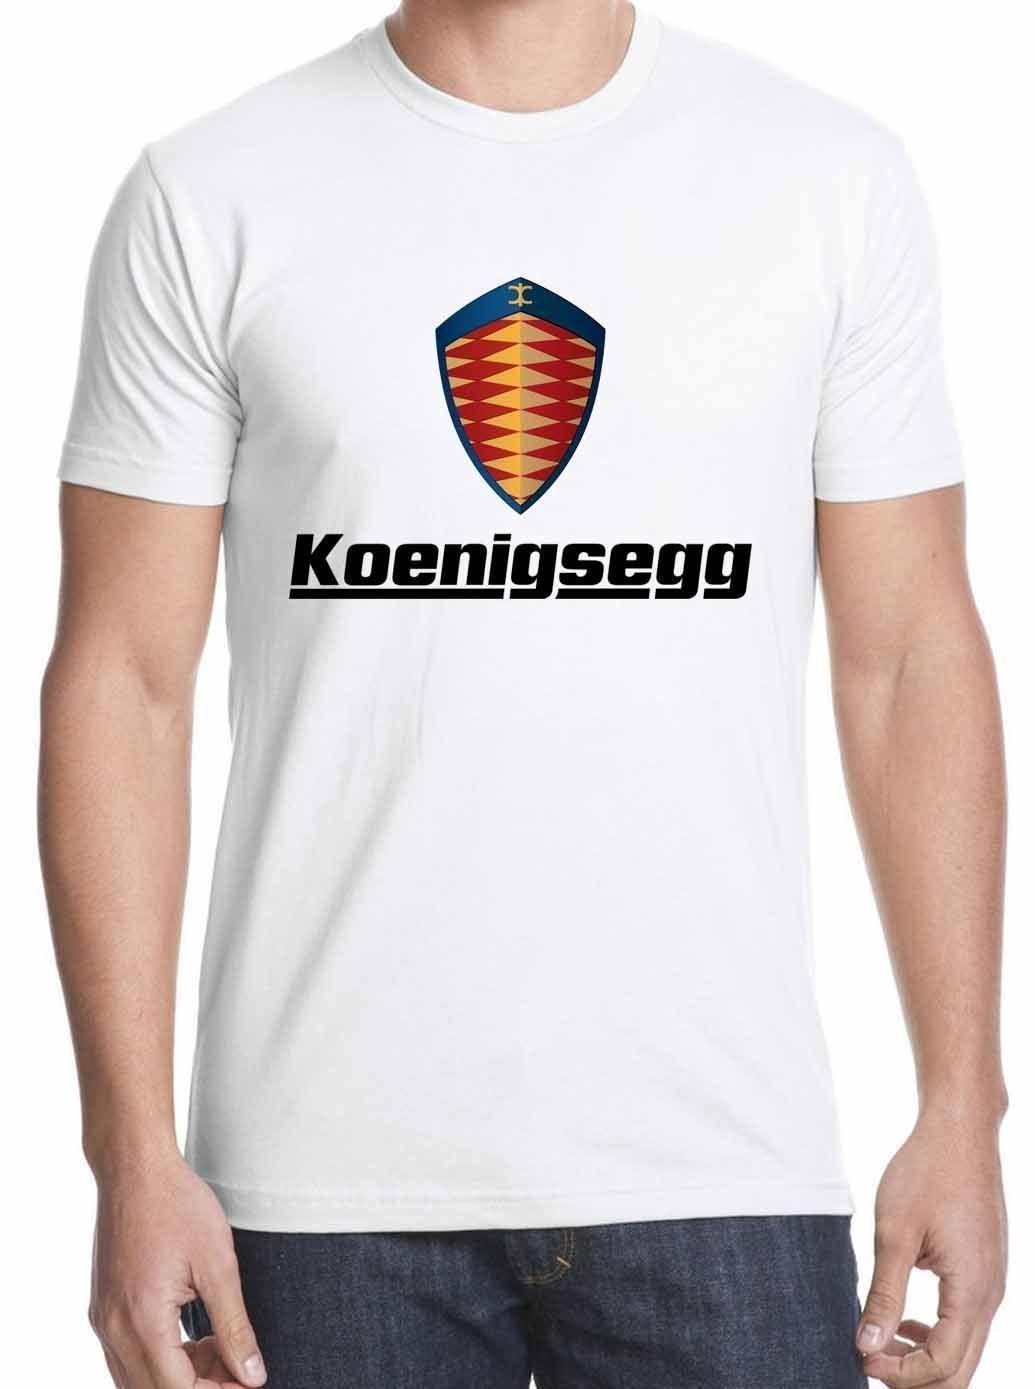 357c82be4 CCX CCXR New Koenigsegg Supercar Logo T Shirt Funniest T Shirt Comical T  Shirts From Linnan00006, $14.66| DHgate.Com